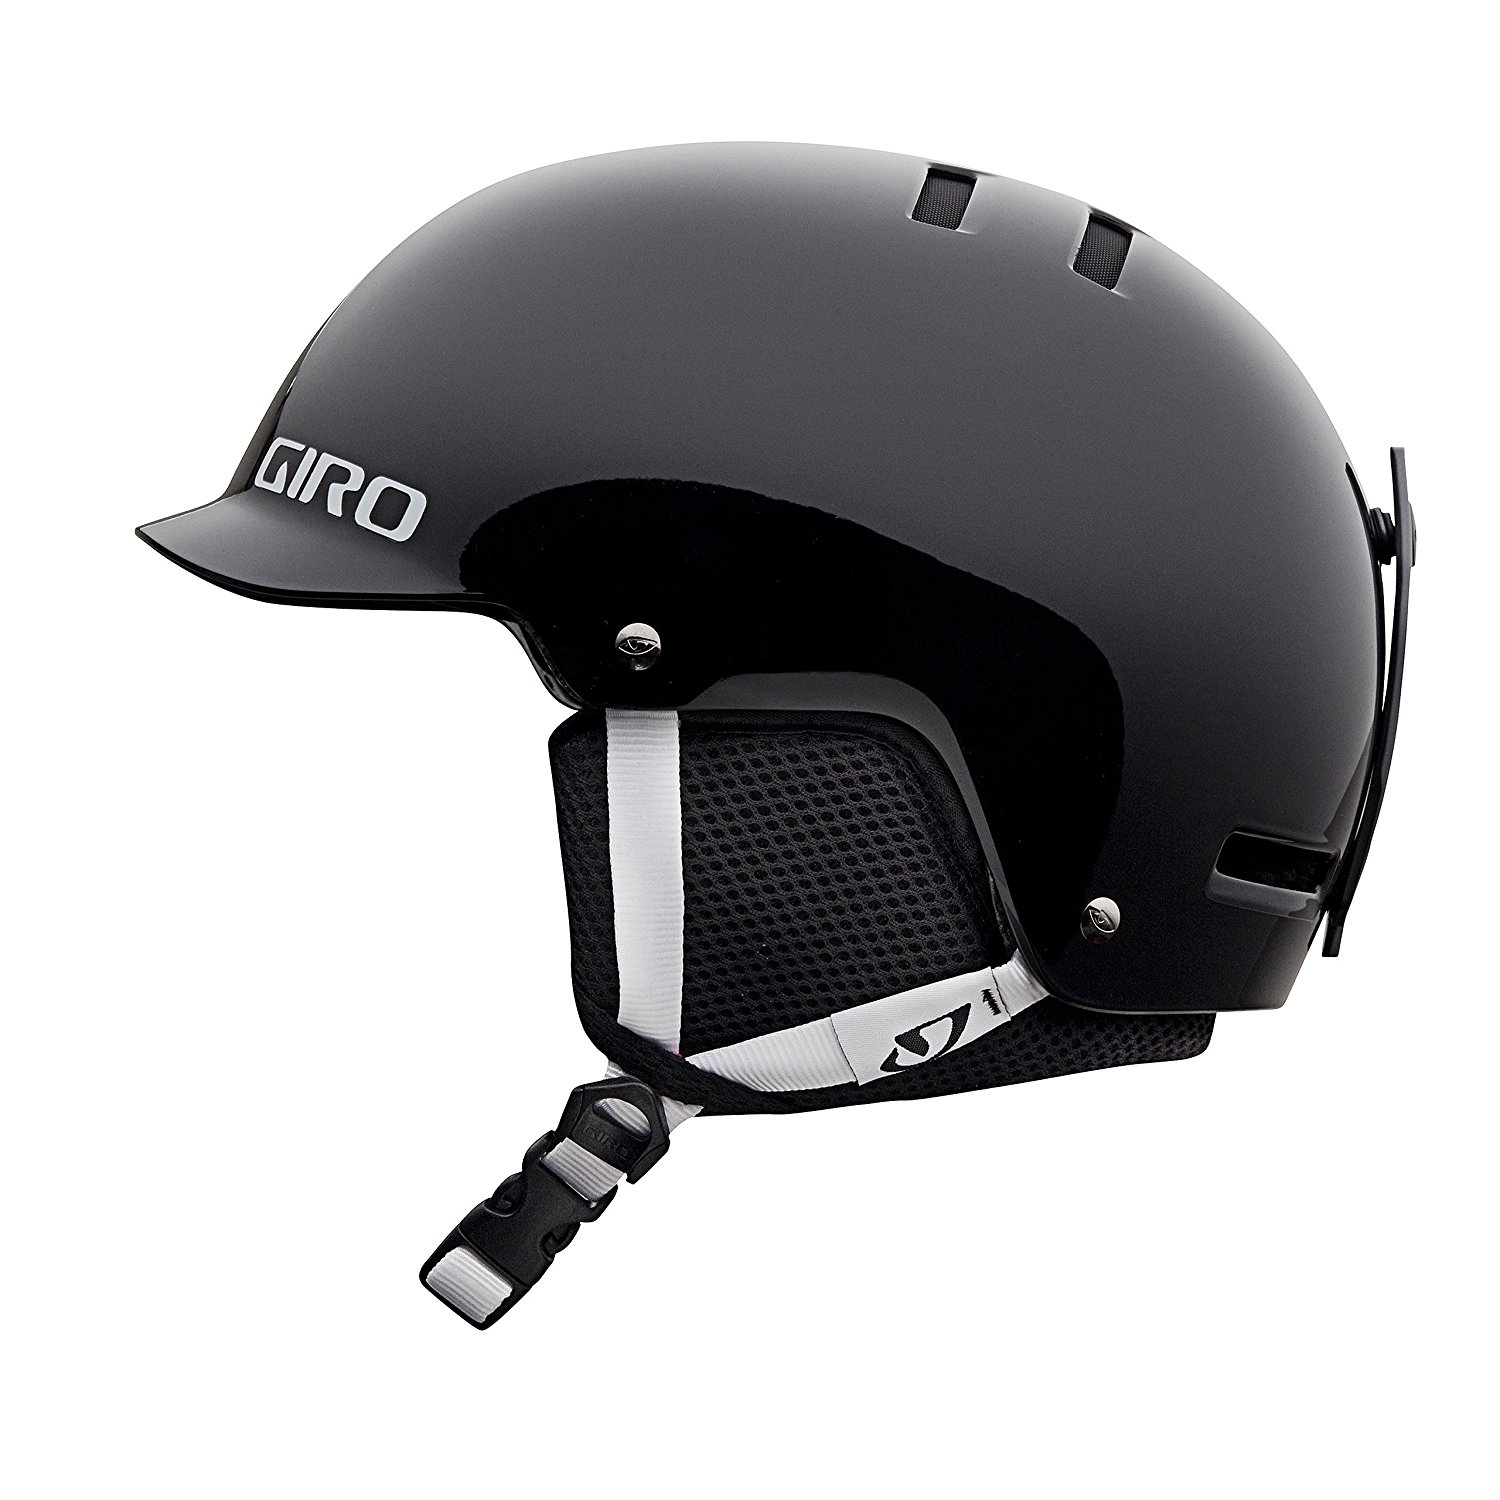 VAULT par Giro (Casque de ski junior, Casques junior)VAULT par Giro (Casque de ski junior, Casques junior)